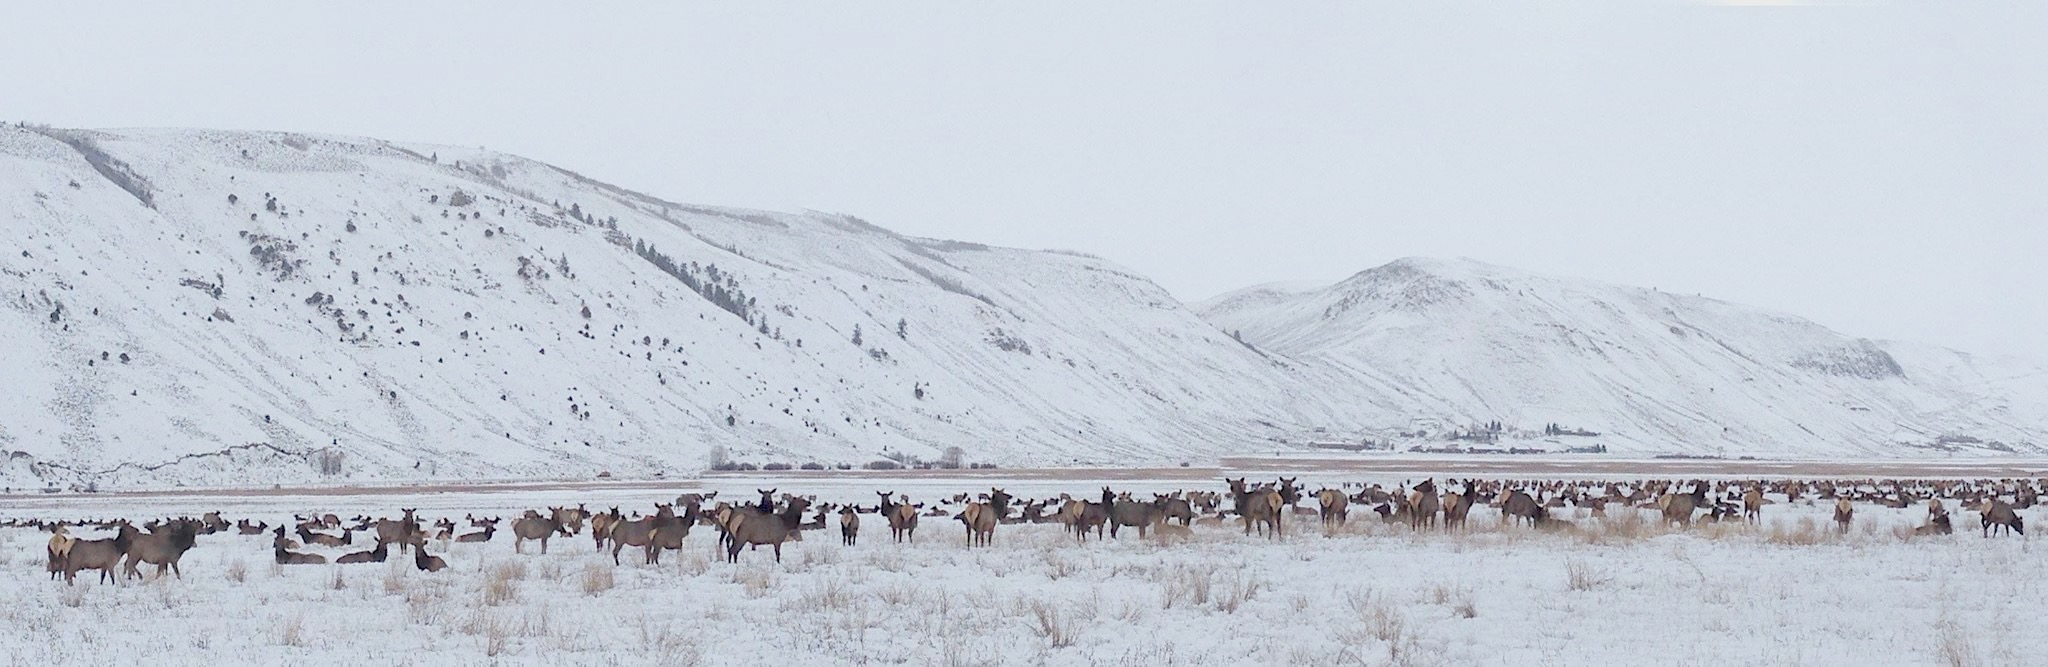 Jackson, Wyoming Elk Refuge